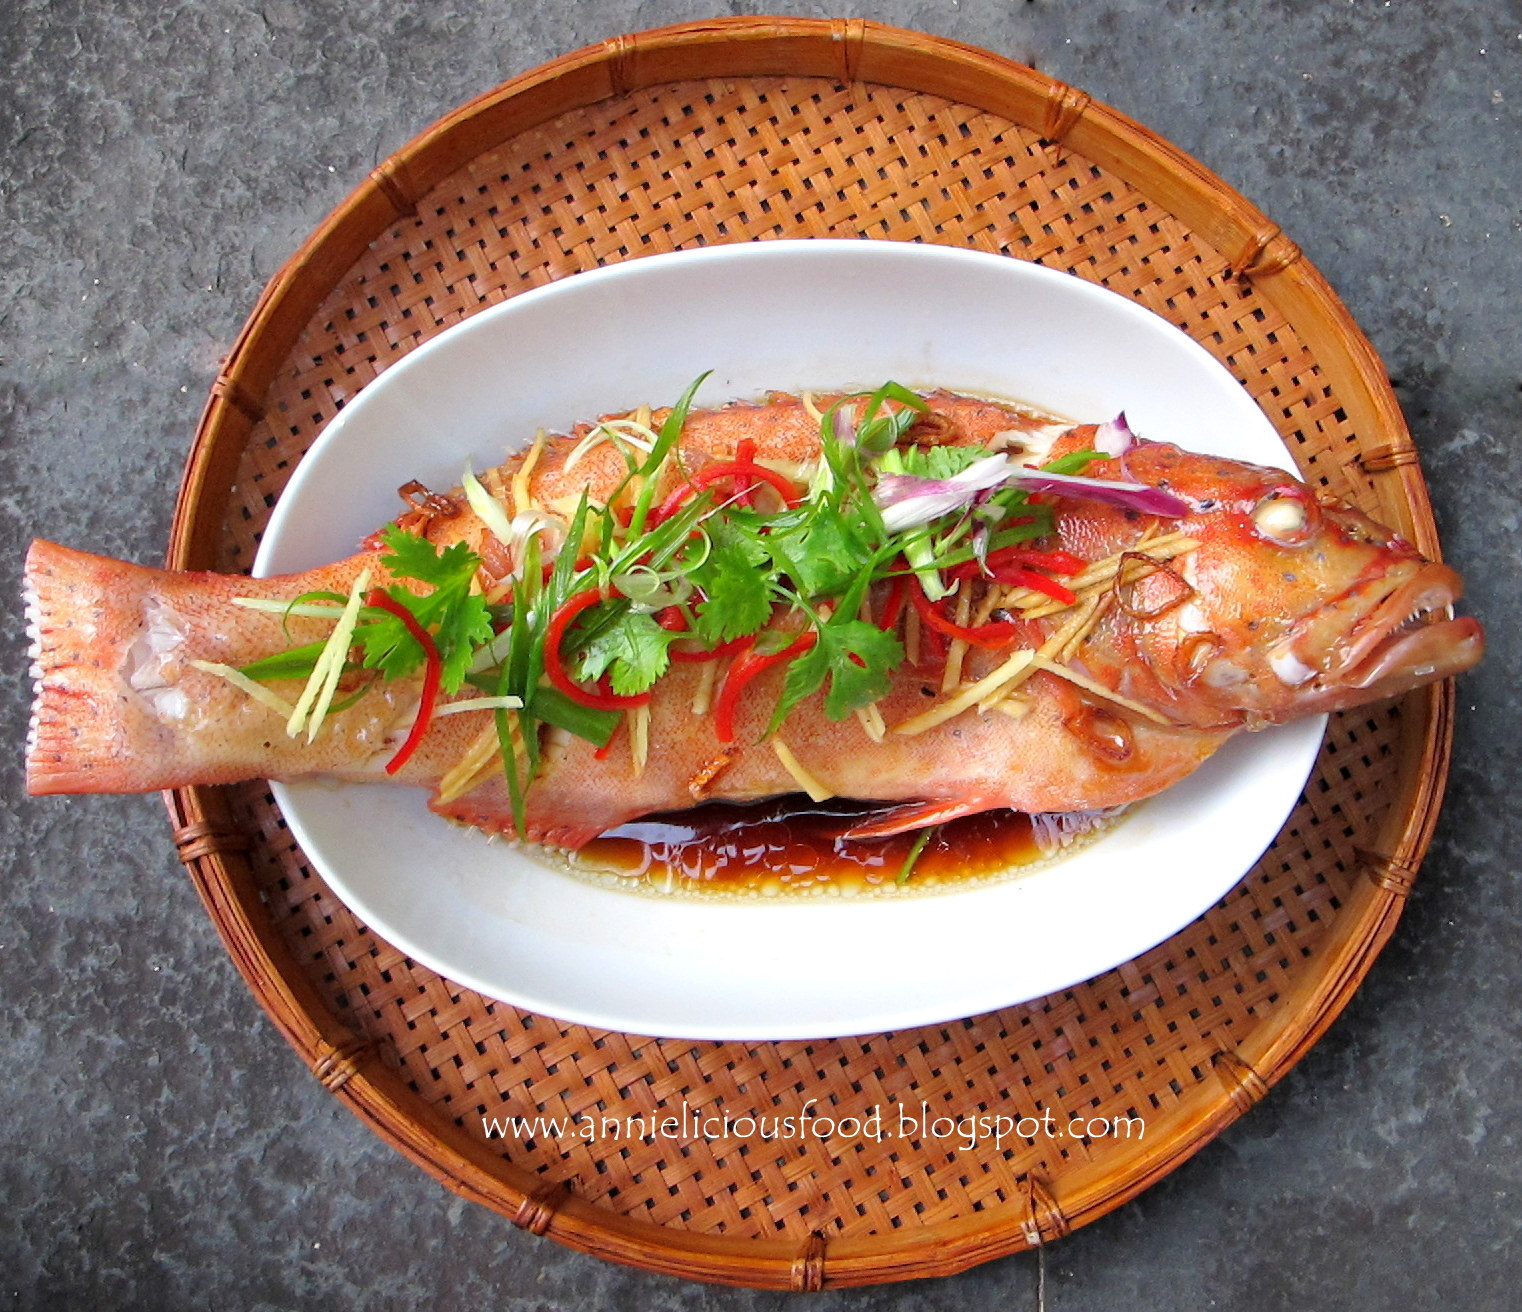 Annielicious Food: Canto Style Steamed Red Grouper (清蒸红石斑)